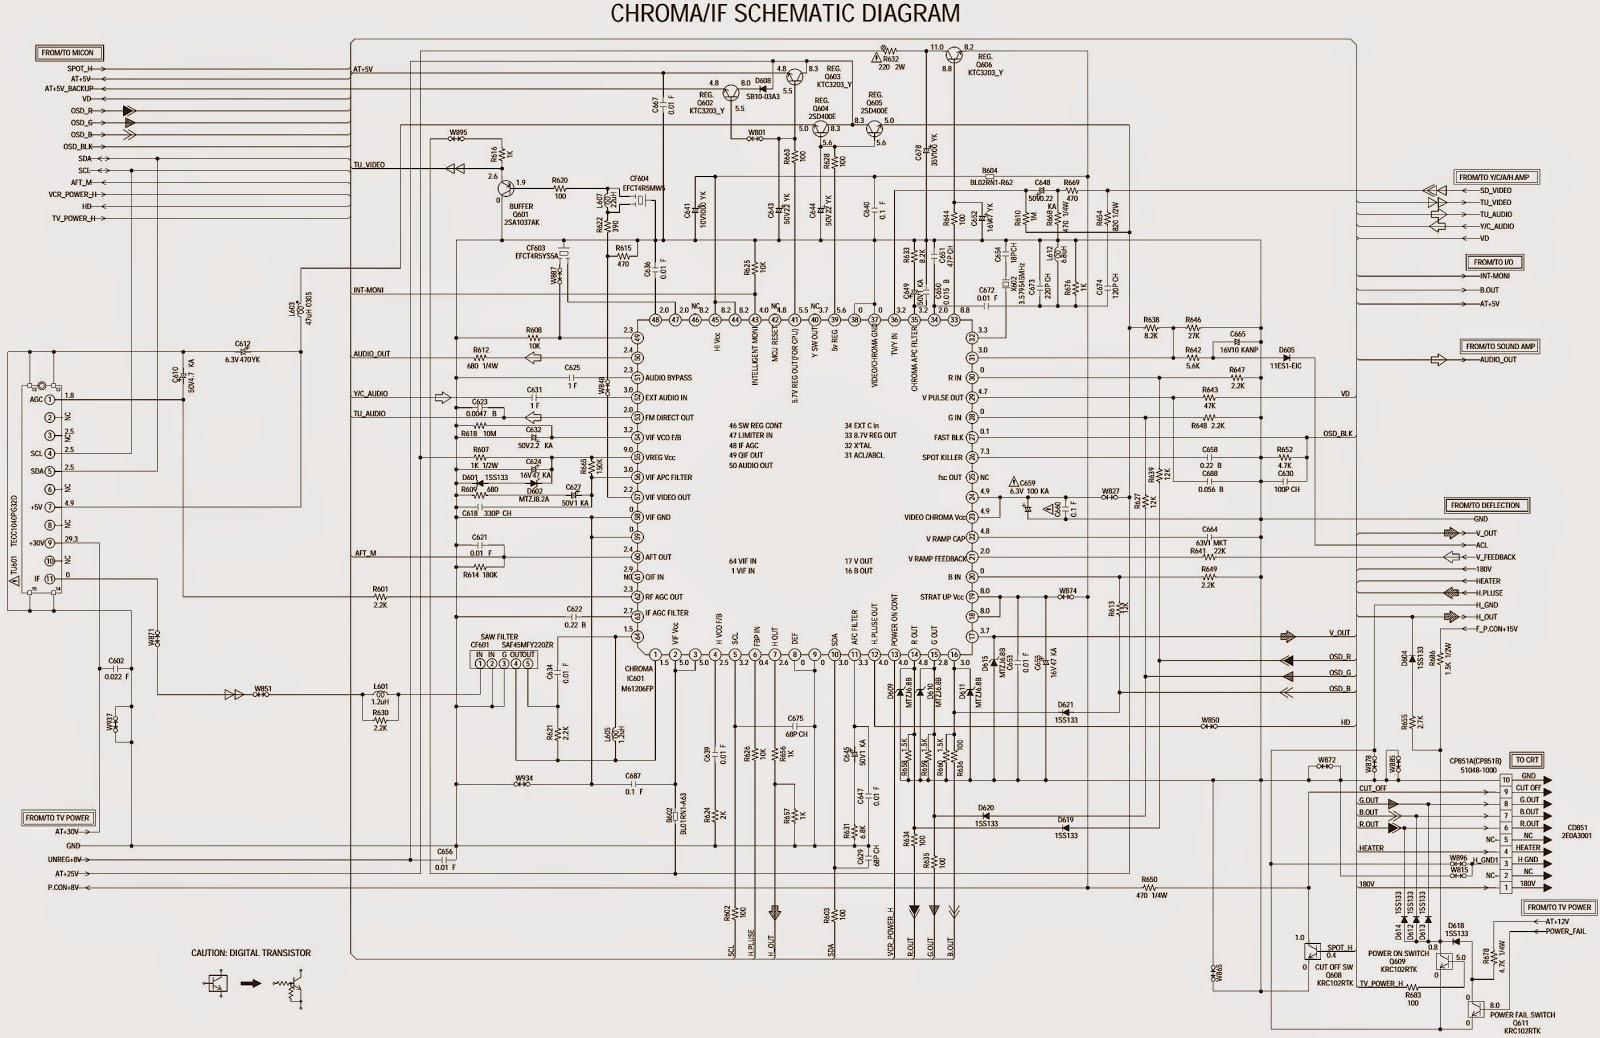 toshiba tv circuit diagram library wiring diagram rh 4 deede dominik suess de toshiba led tv schematic diagram toshiba color tv schematic diagram